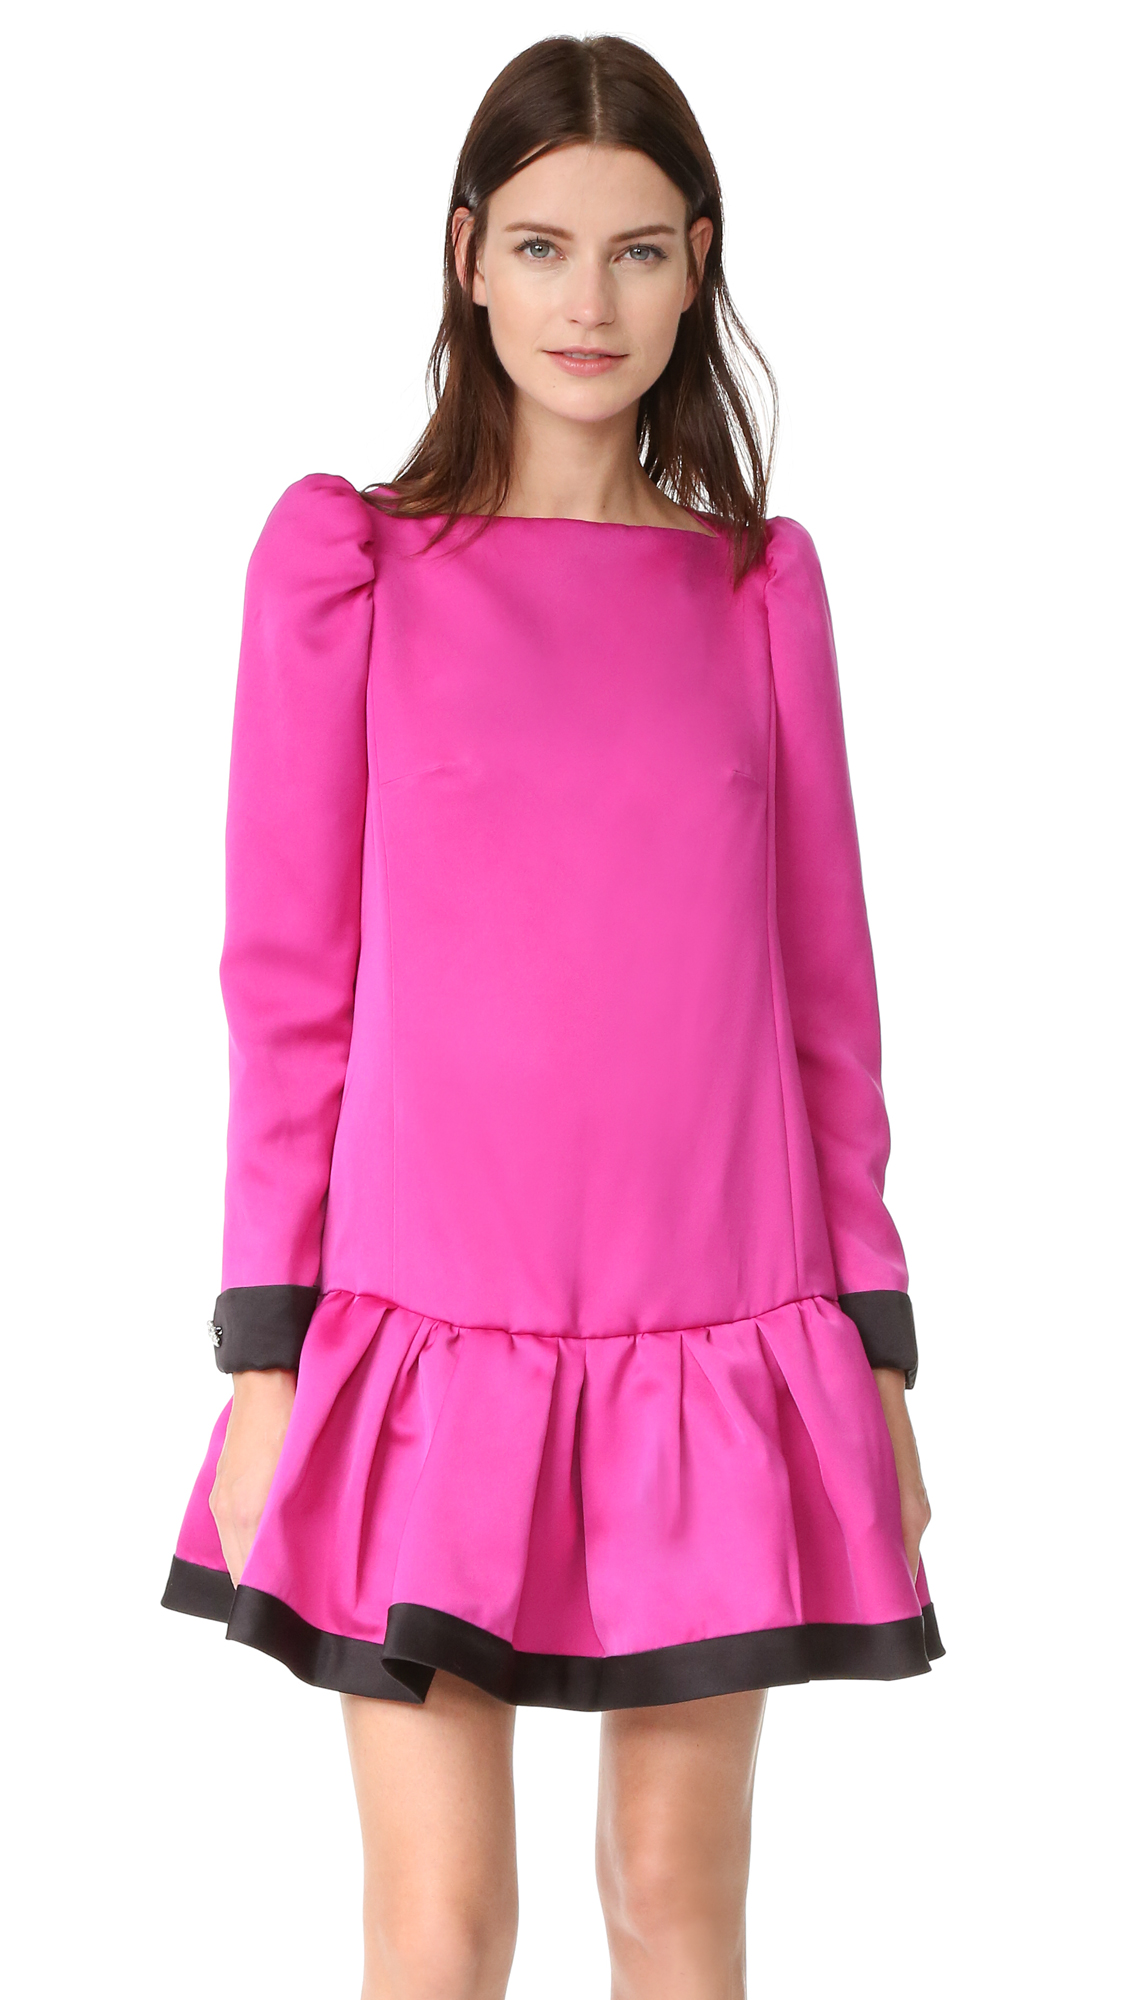 marc jacobs female marc jacobs long sleeve dress with ruffle magenta